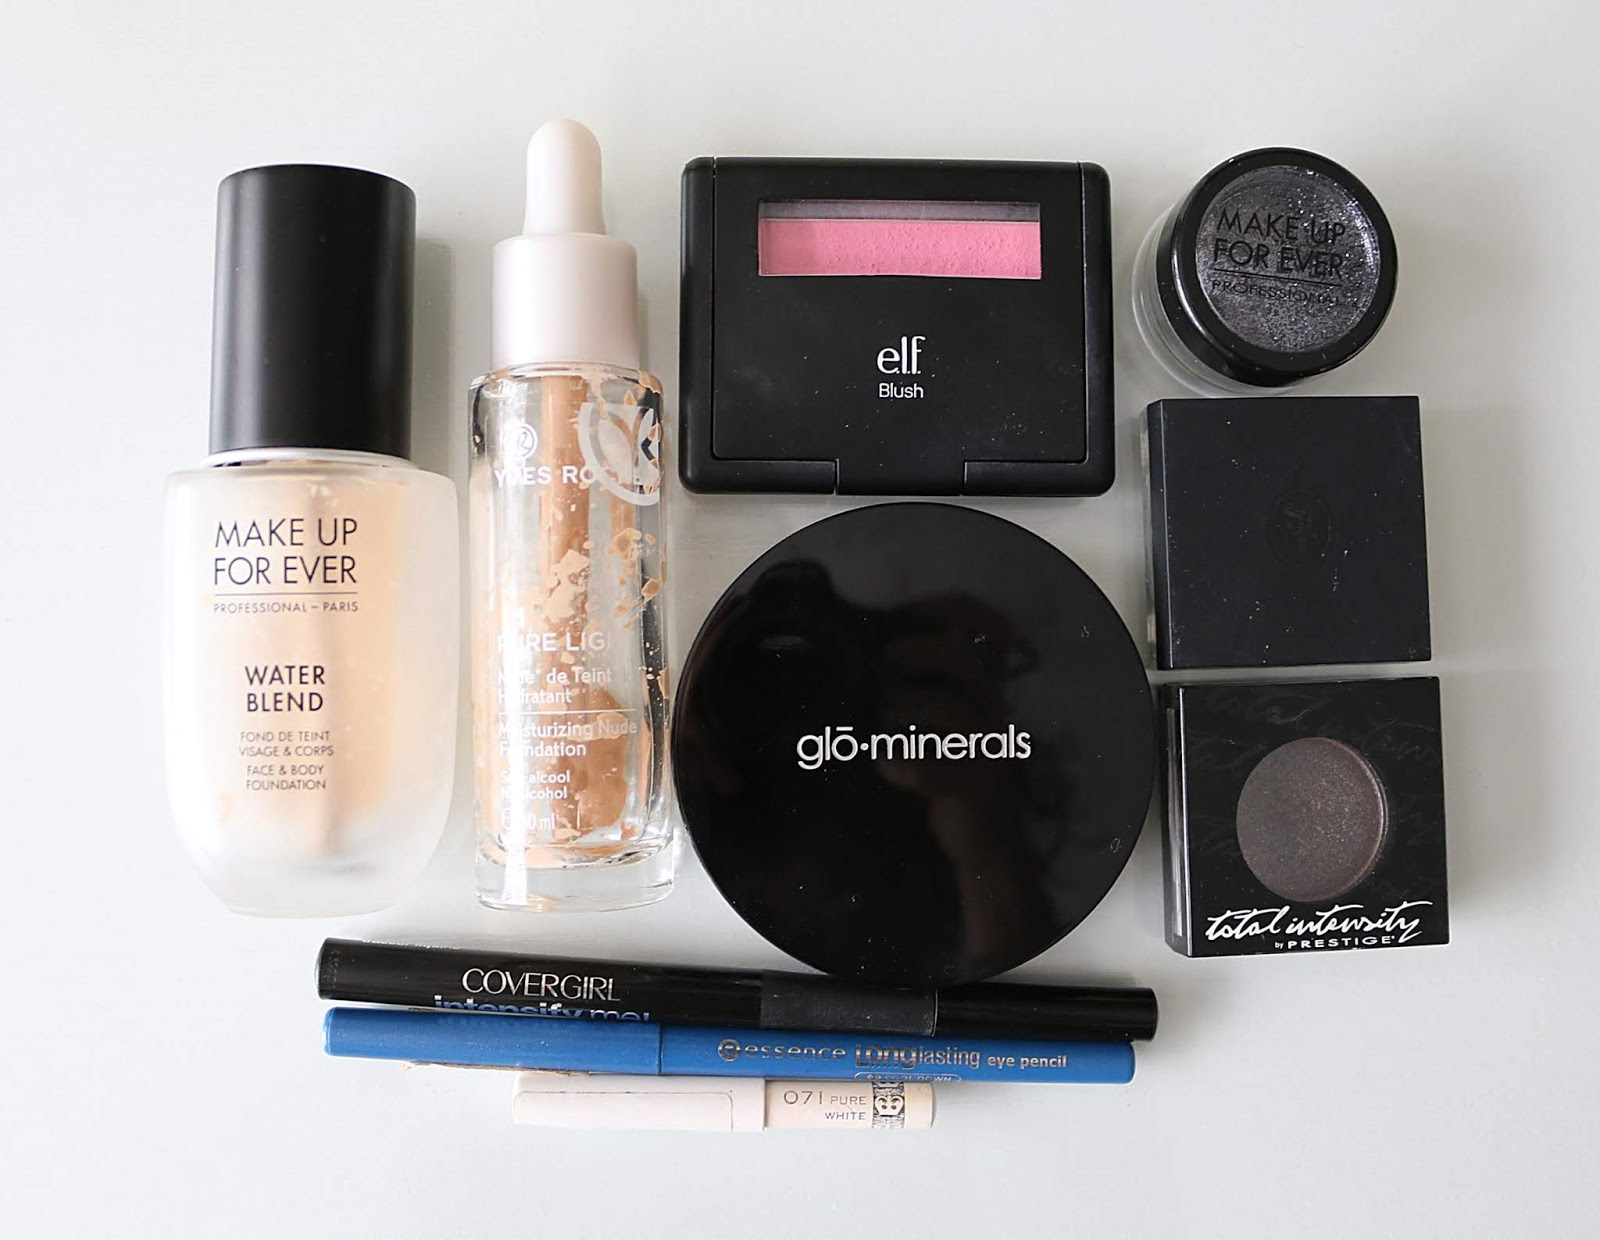 empties make up for ever yves rocher glo  skin beauty e.l.f. prestige sothys covergirl essence rimmel